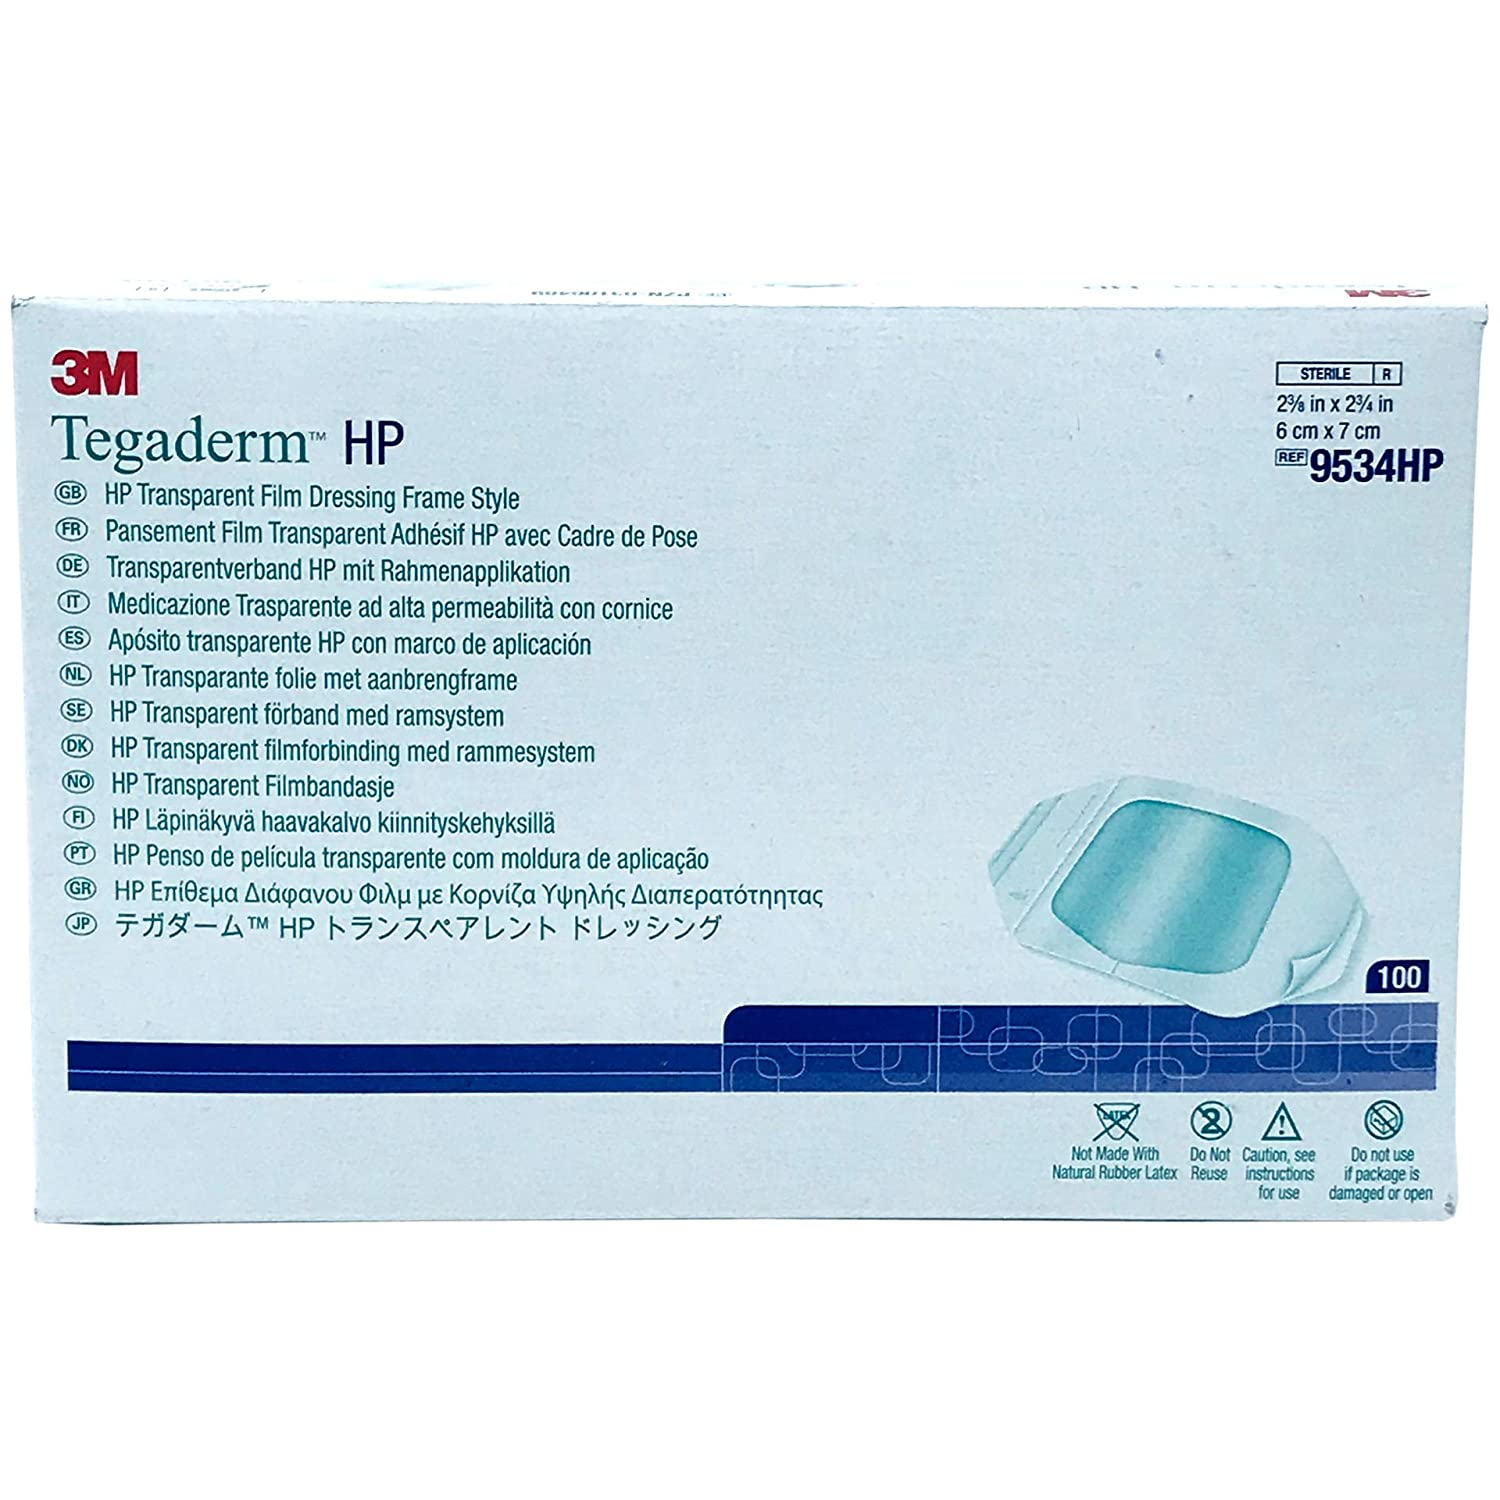 3m Tegaderm Hp Transparent Dressing 2.375 x 2.75 in./ 6 x 7 cm/Box of 100